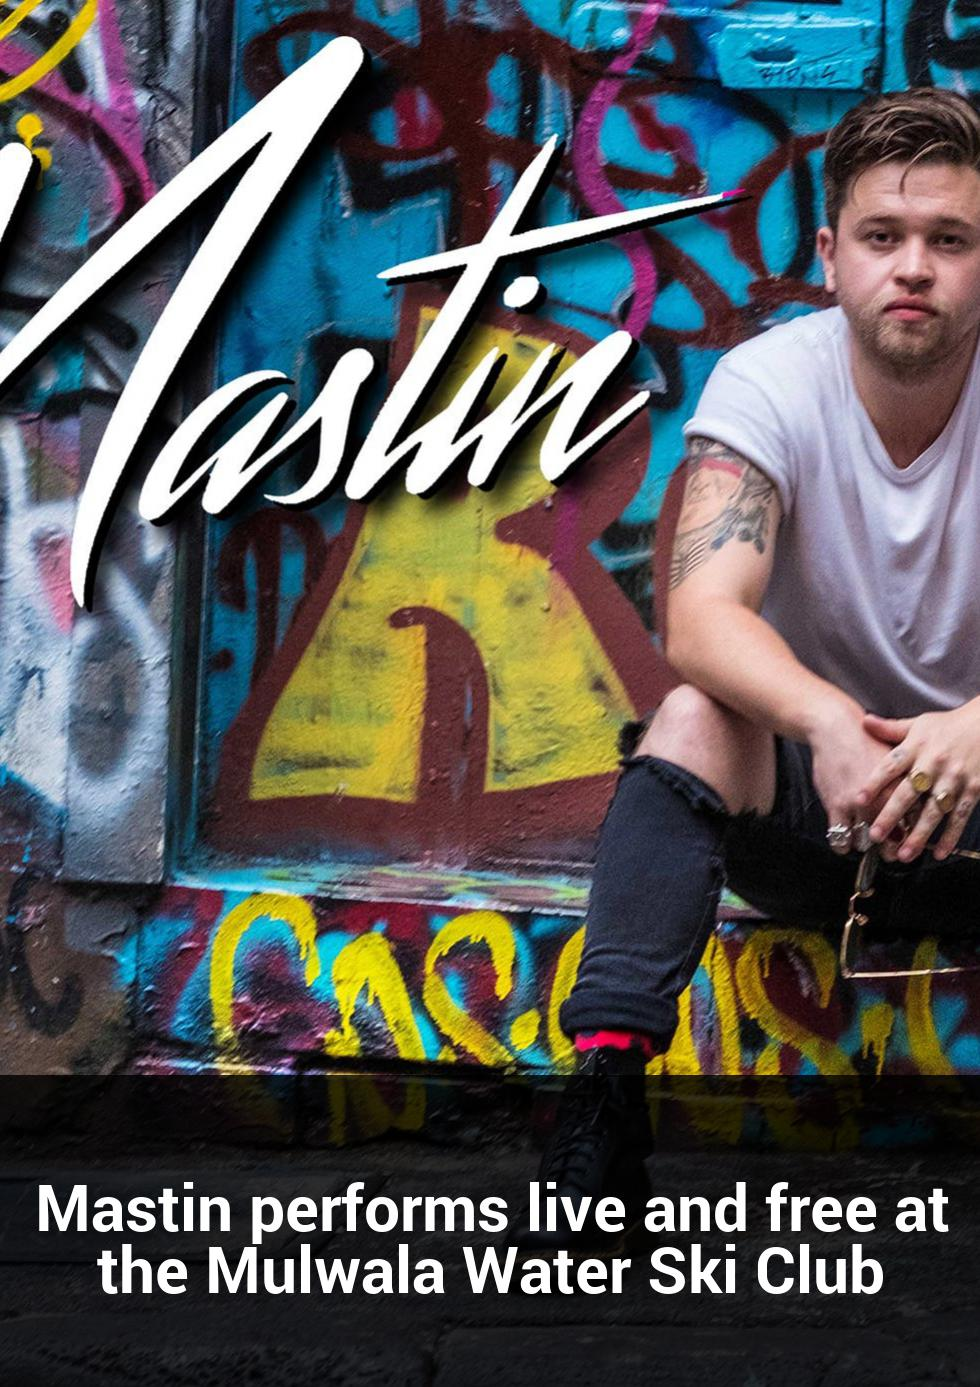 Mastin performs live and free at the Mulwala Water Ski Club at Mulwala Water Ski Club